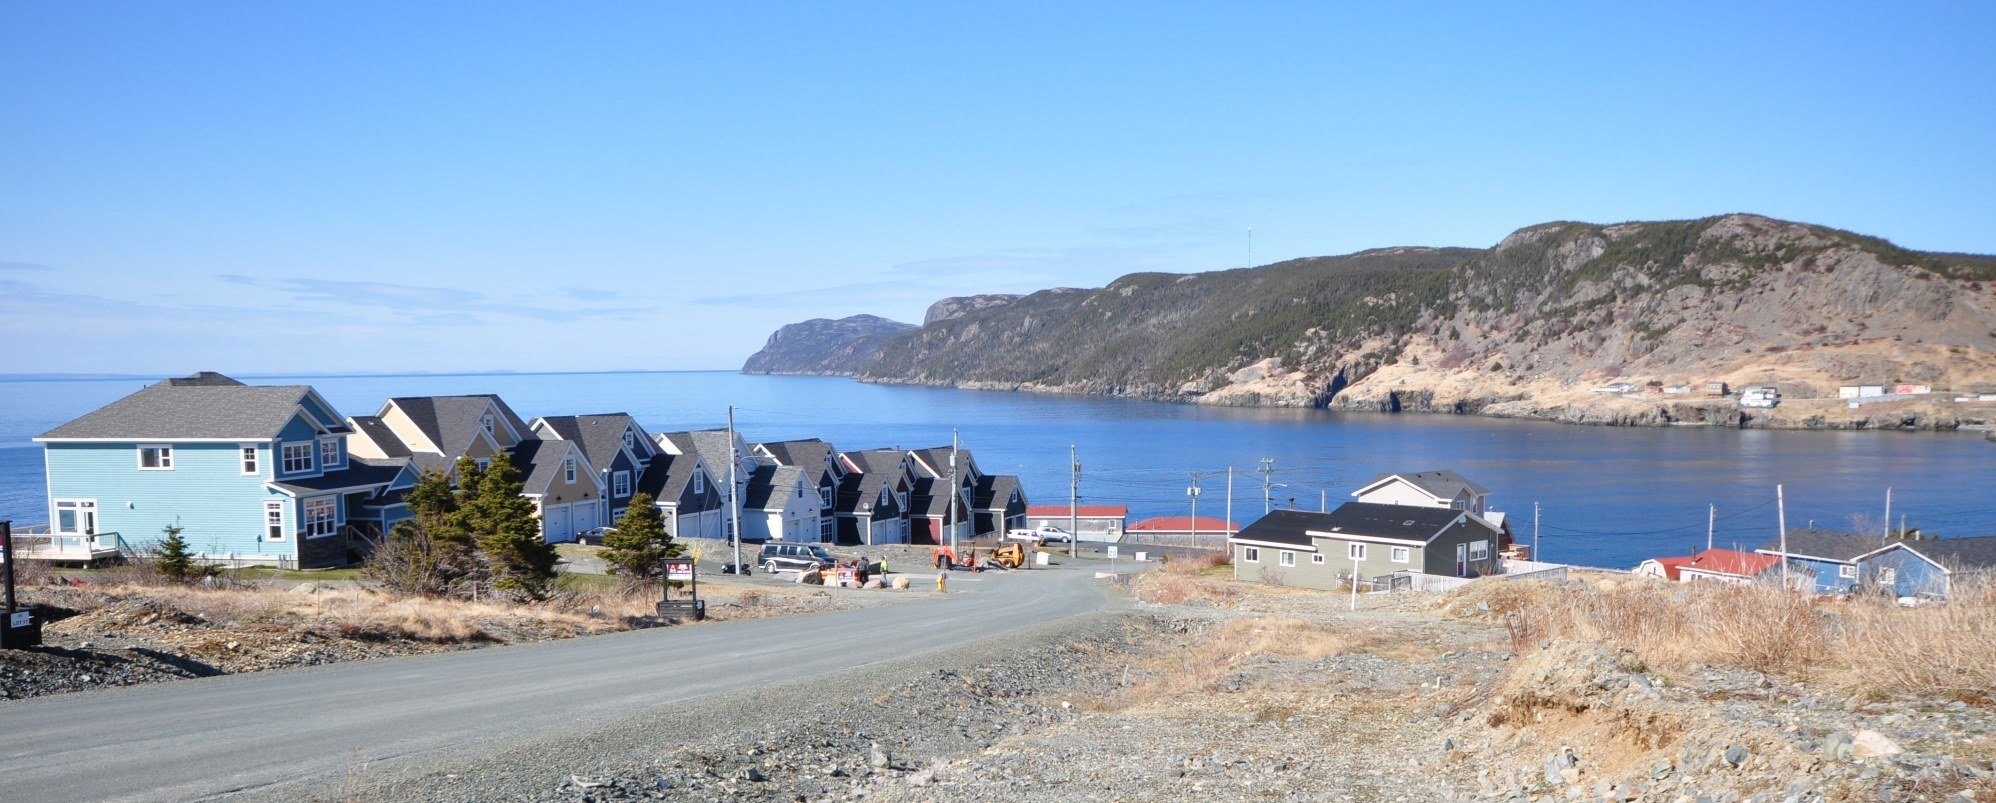 Homes for sale in Portugal Cove